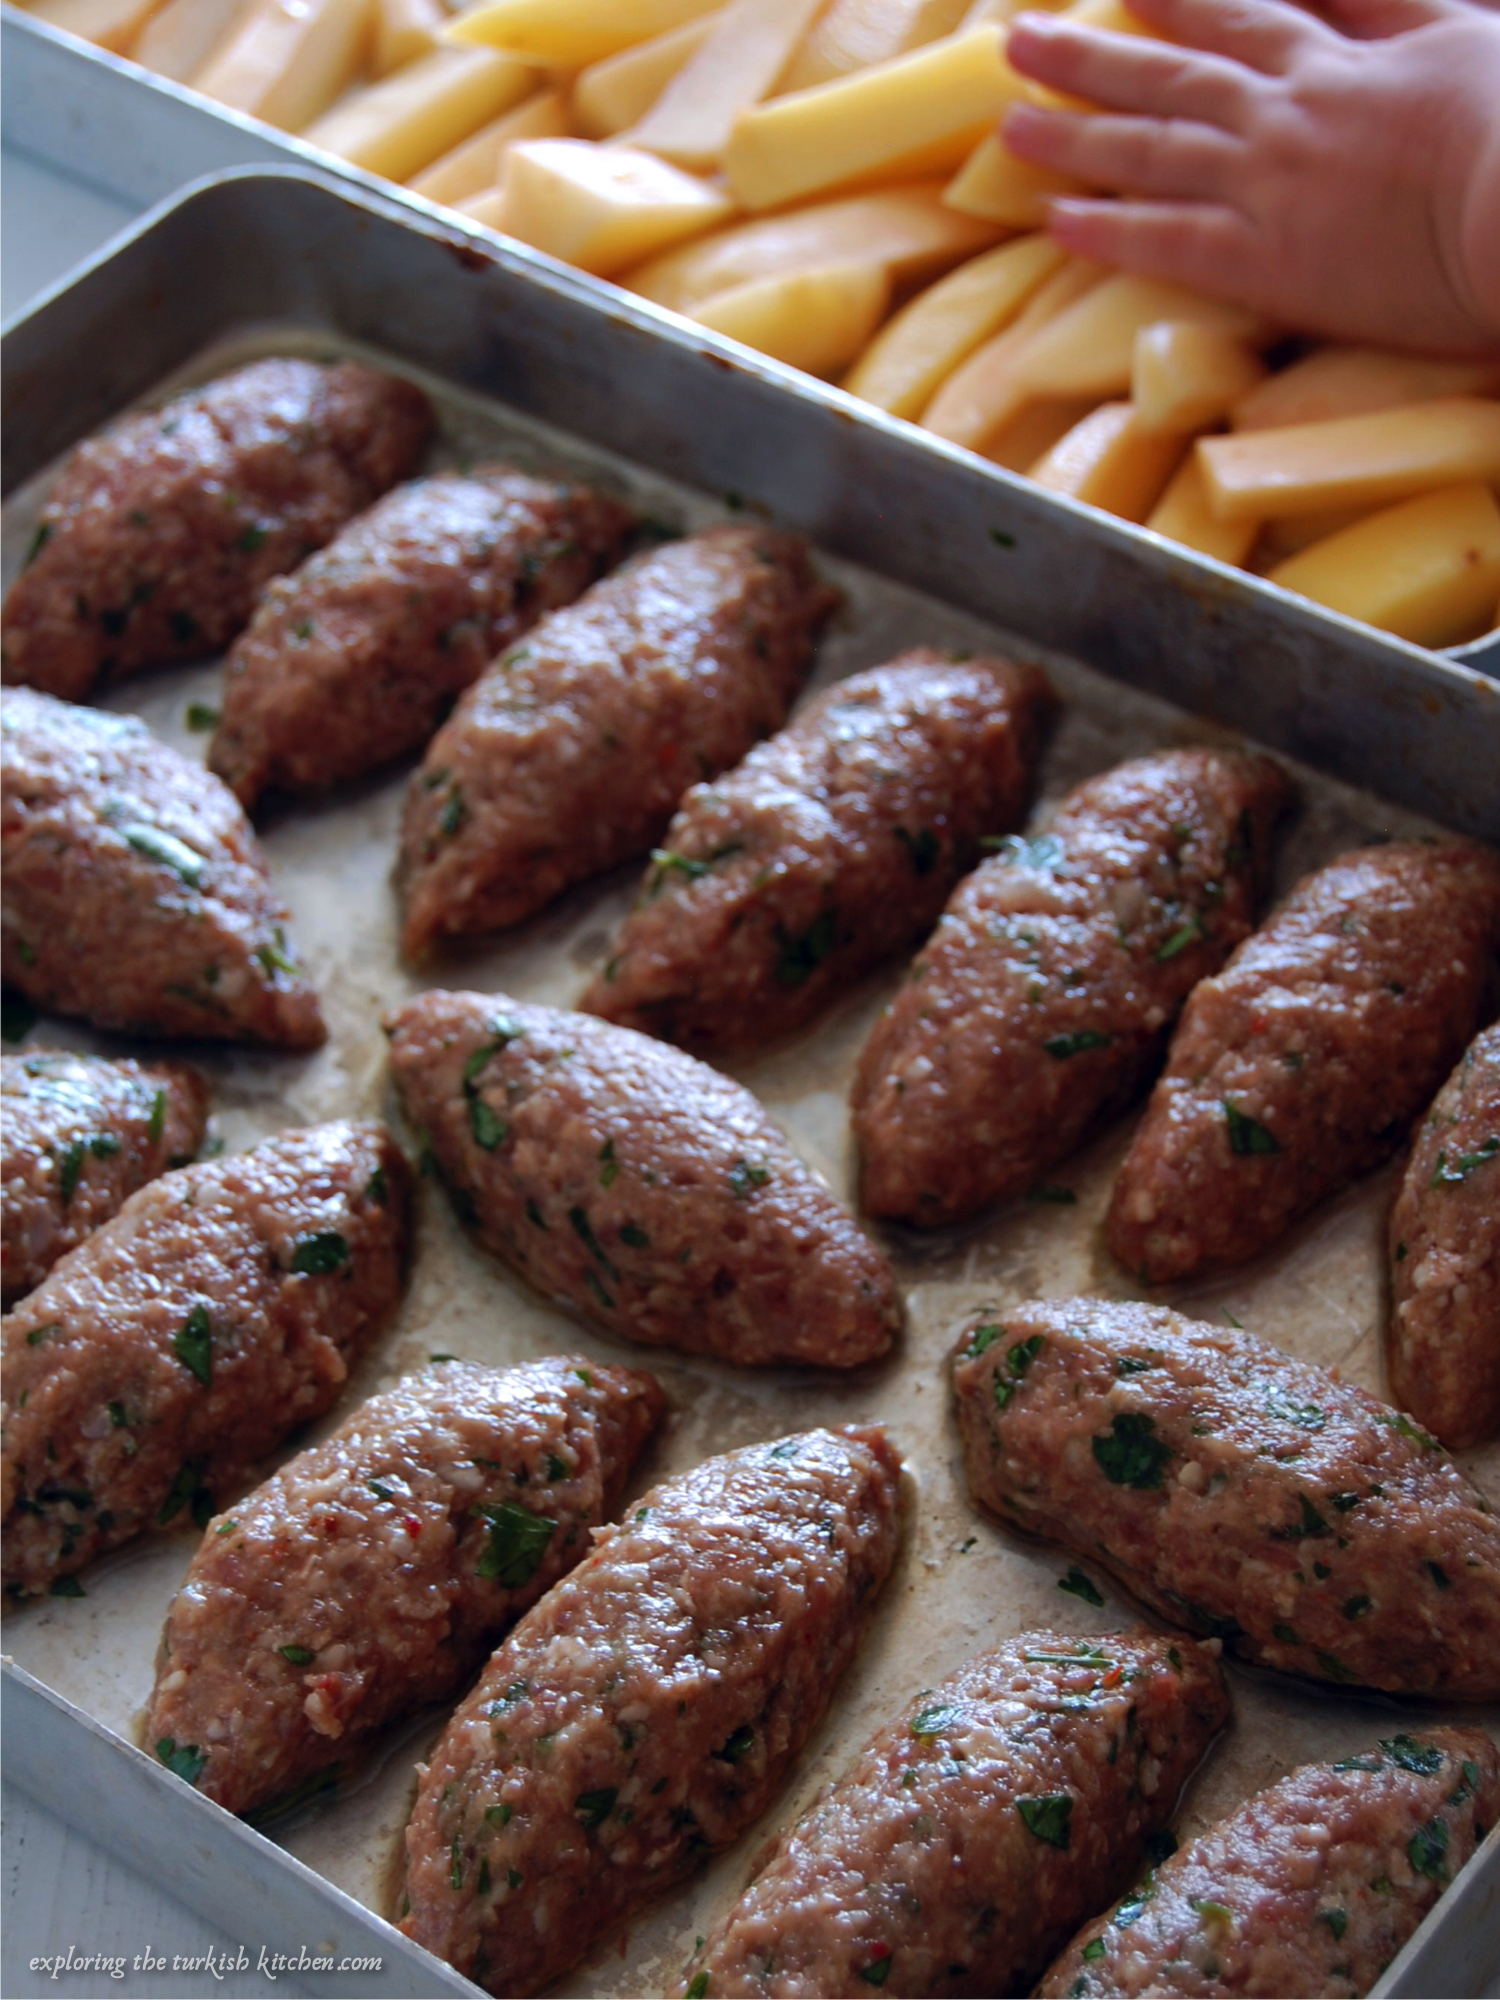 Turkish Izmir style meatballs, long shaped patties lined up on a baking sheet. Potato wedges on tray behind with small child hand patting them down.